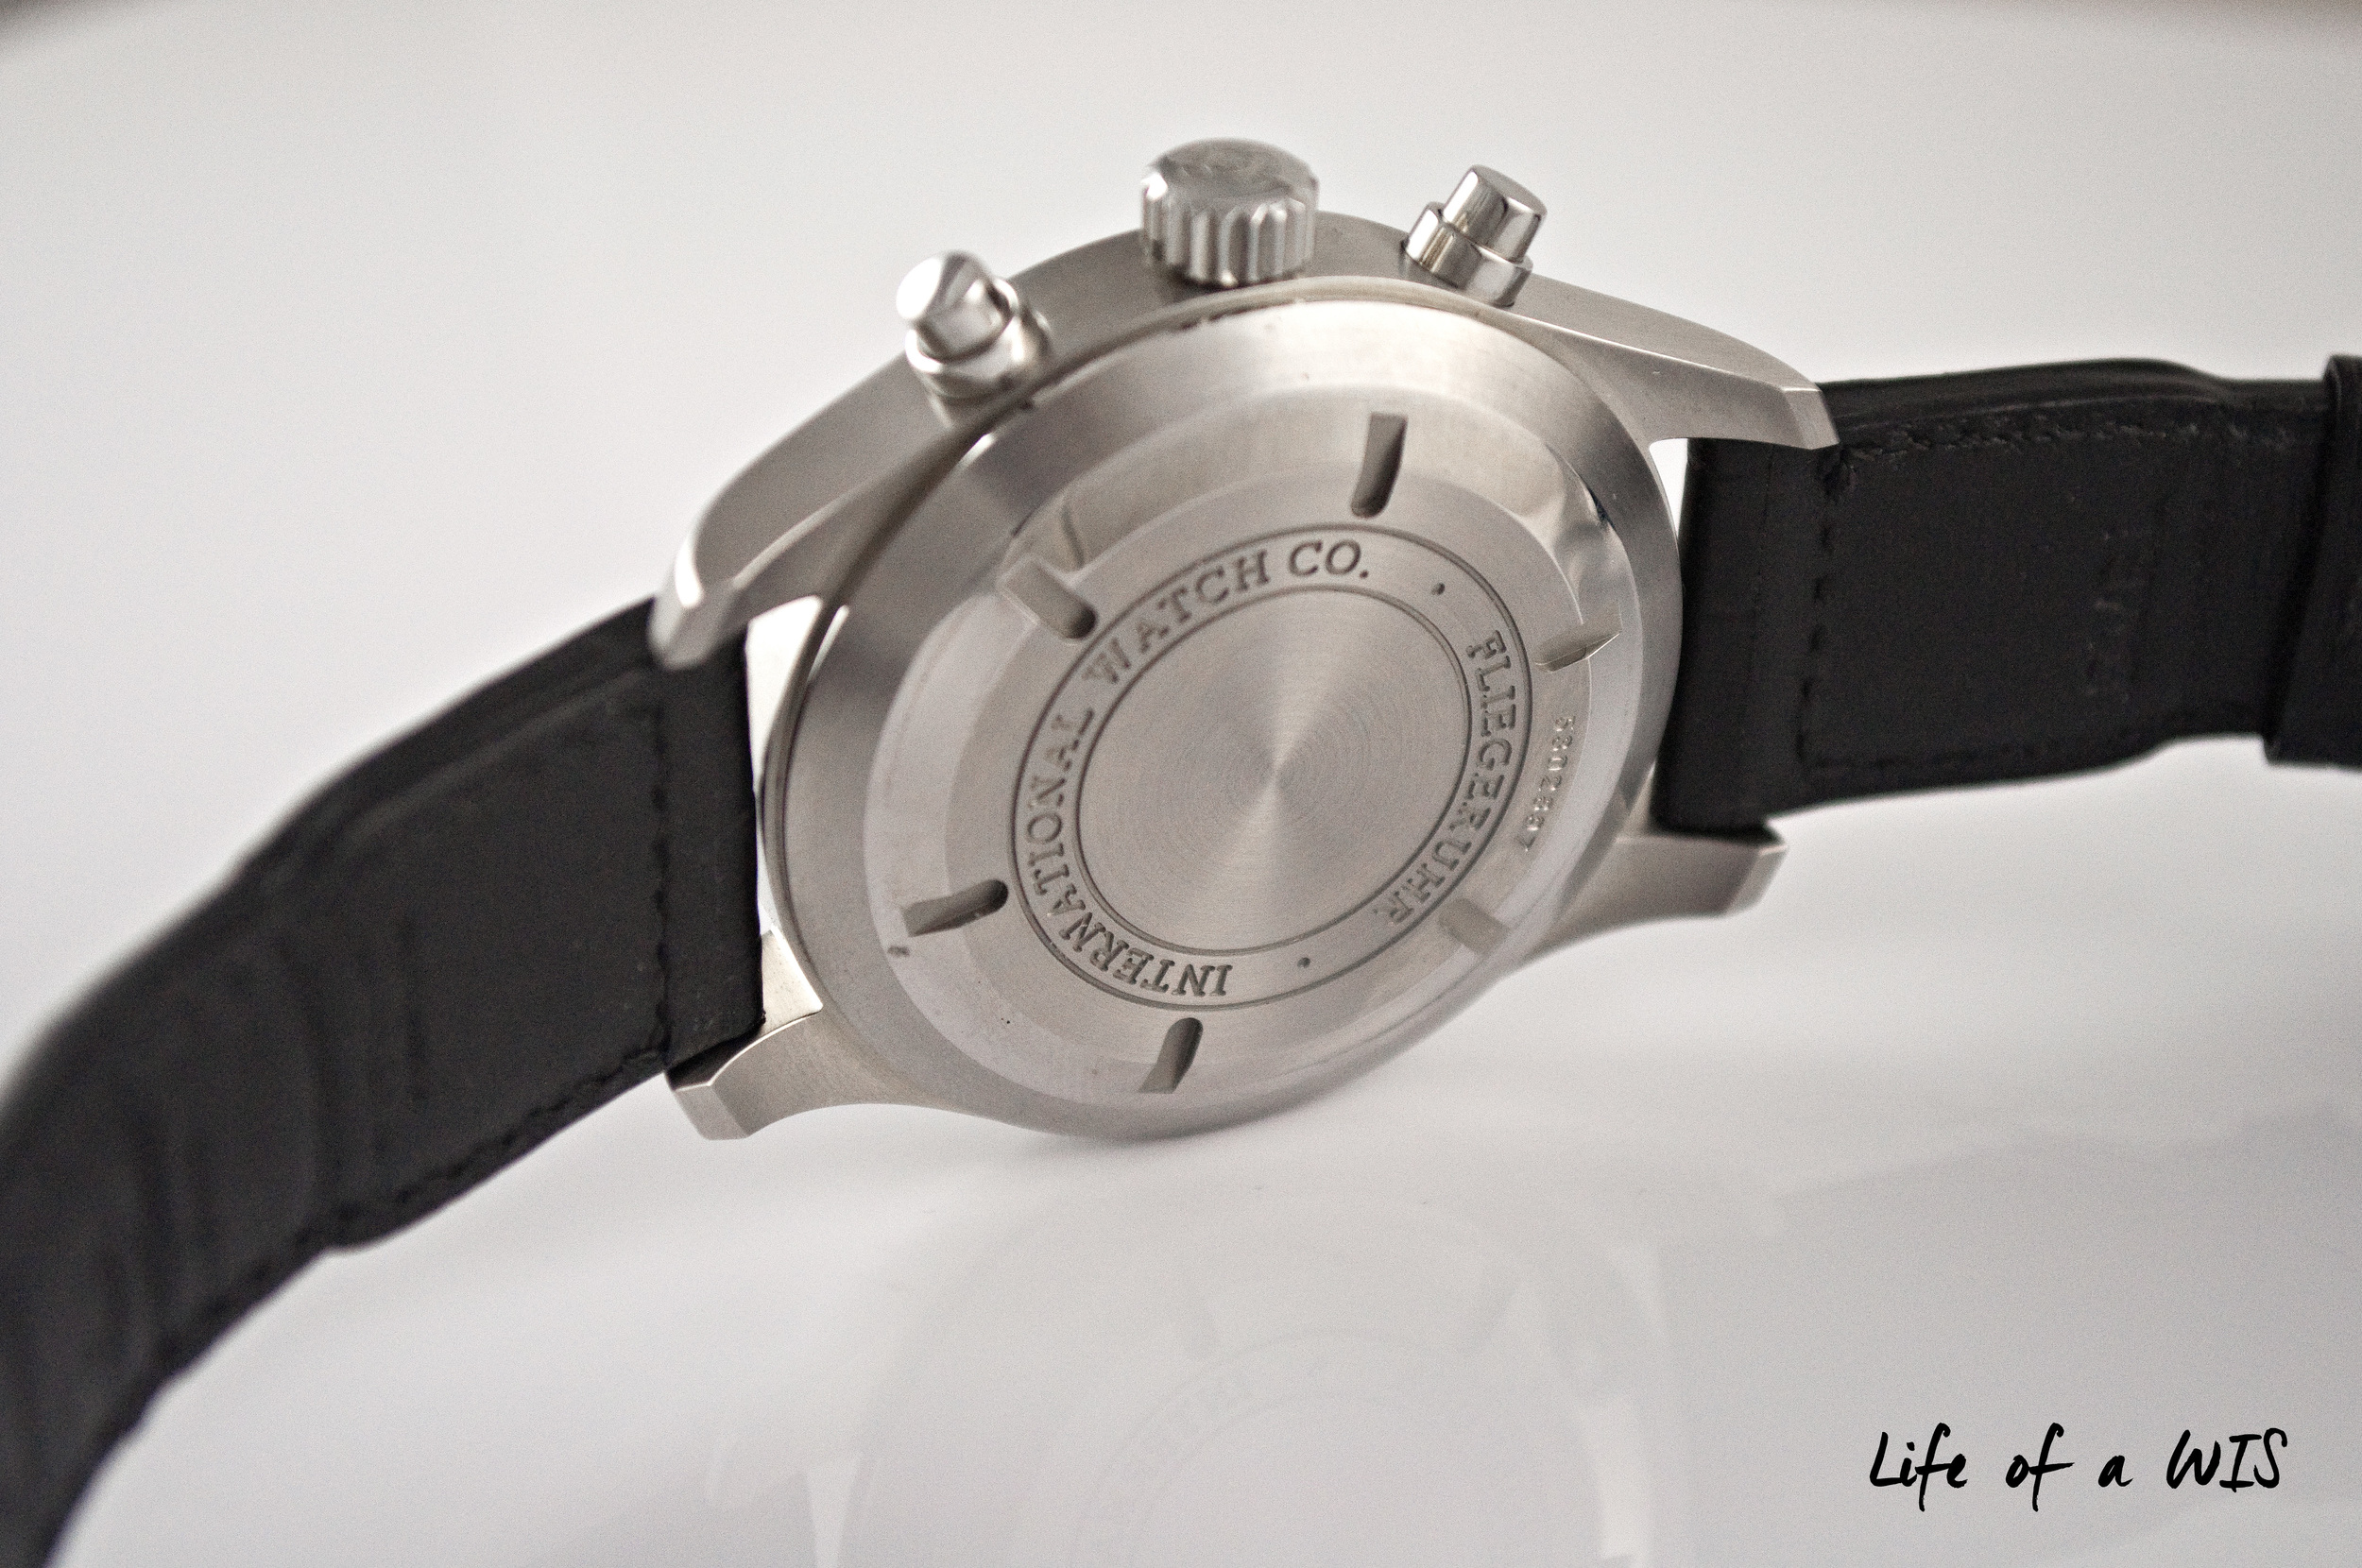 A modified Valjoux 7750 movement powers this beauty.